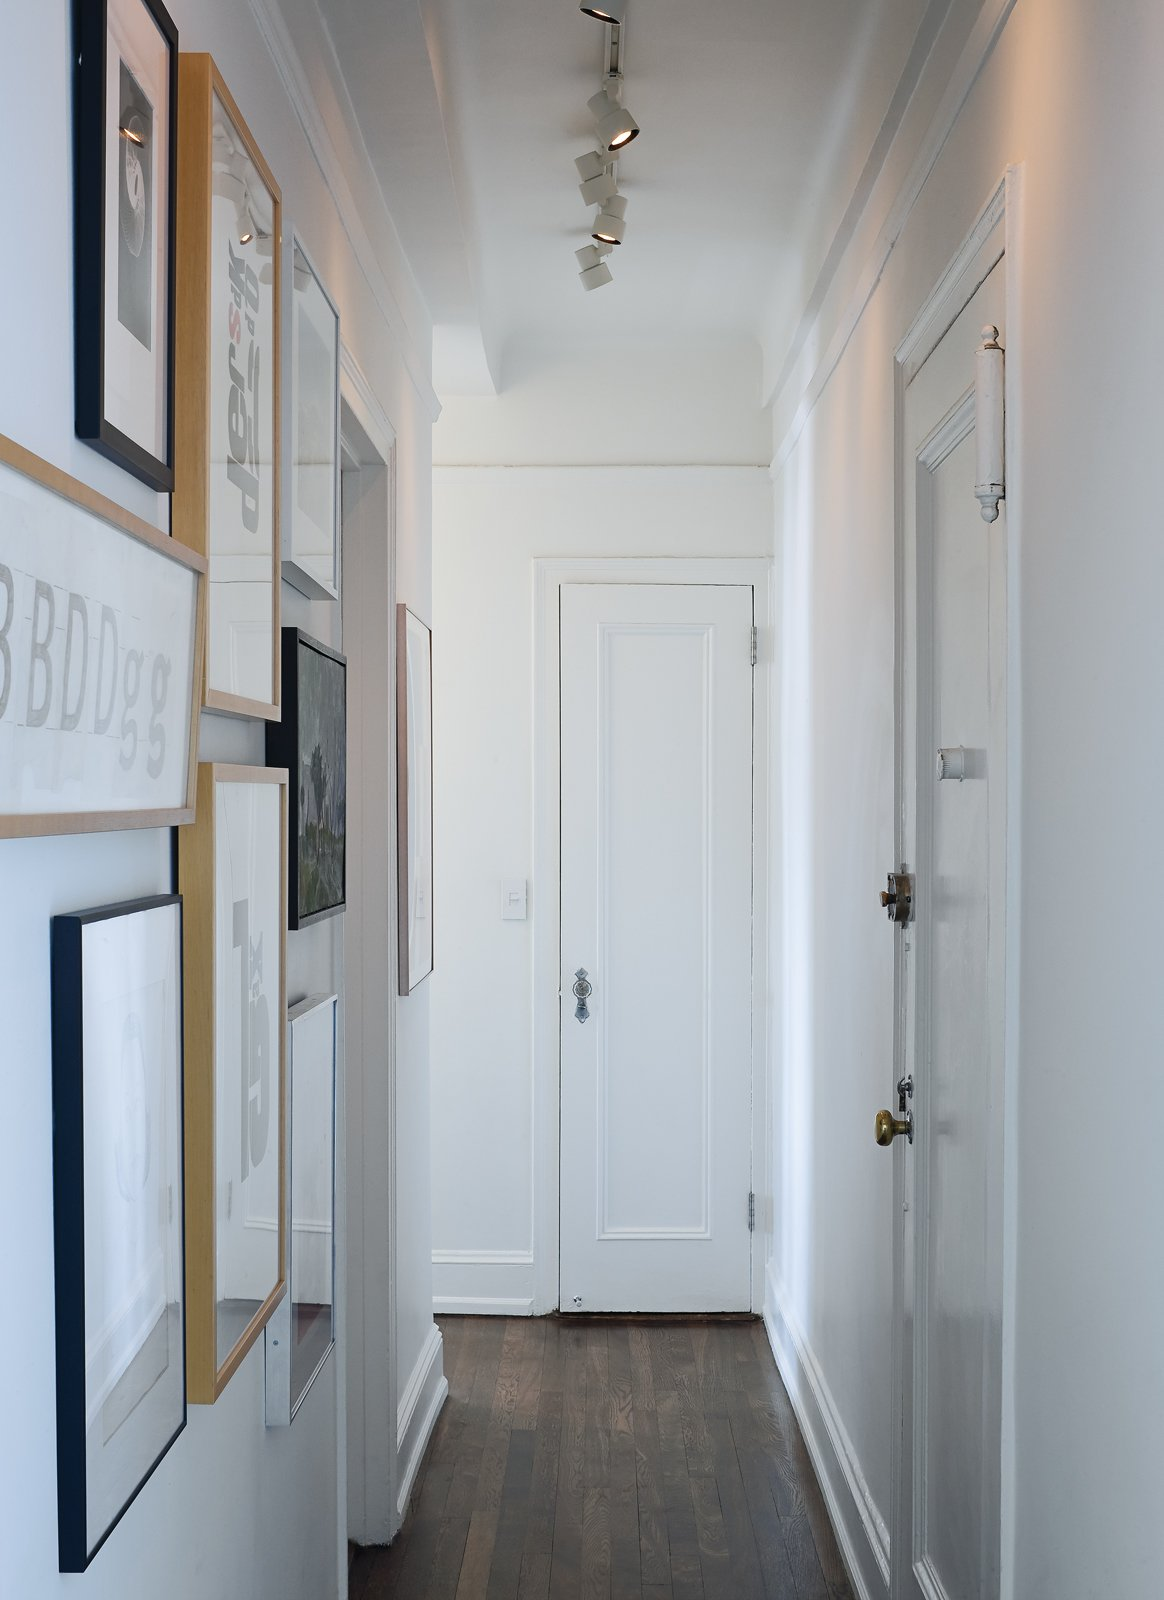 A narrow hallway, typical of prewar apartments, doubles as an art gallery lined with woodcut type studies by graphic artist Jack Stauffacher, type sketches by Erik Spiekermann, and photography by Catherine Opie and Catherine Ledner.  Photo 7 of 13 in Creative Renovation in Brooklyn